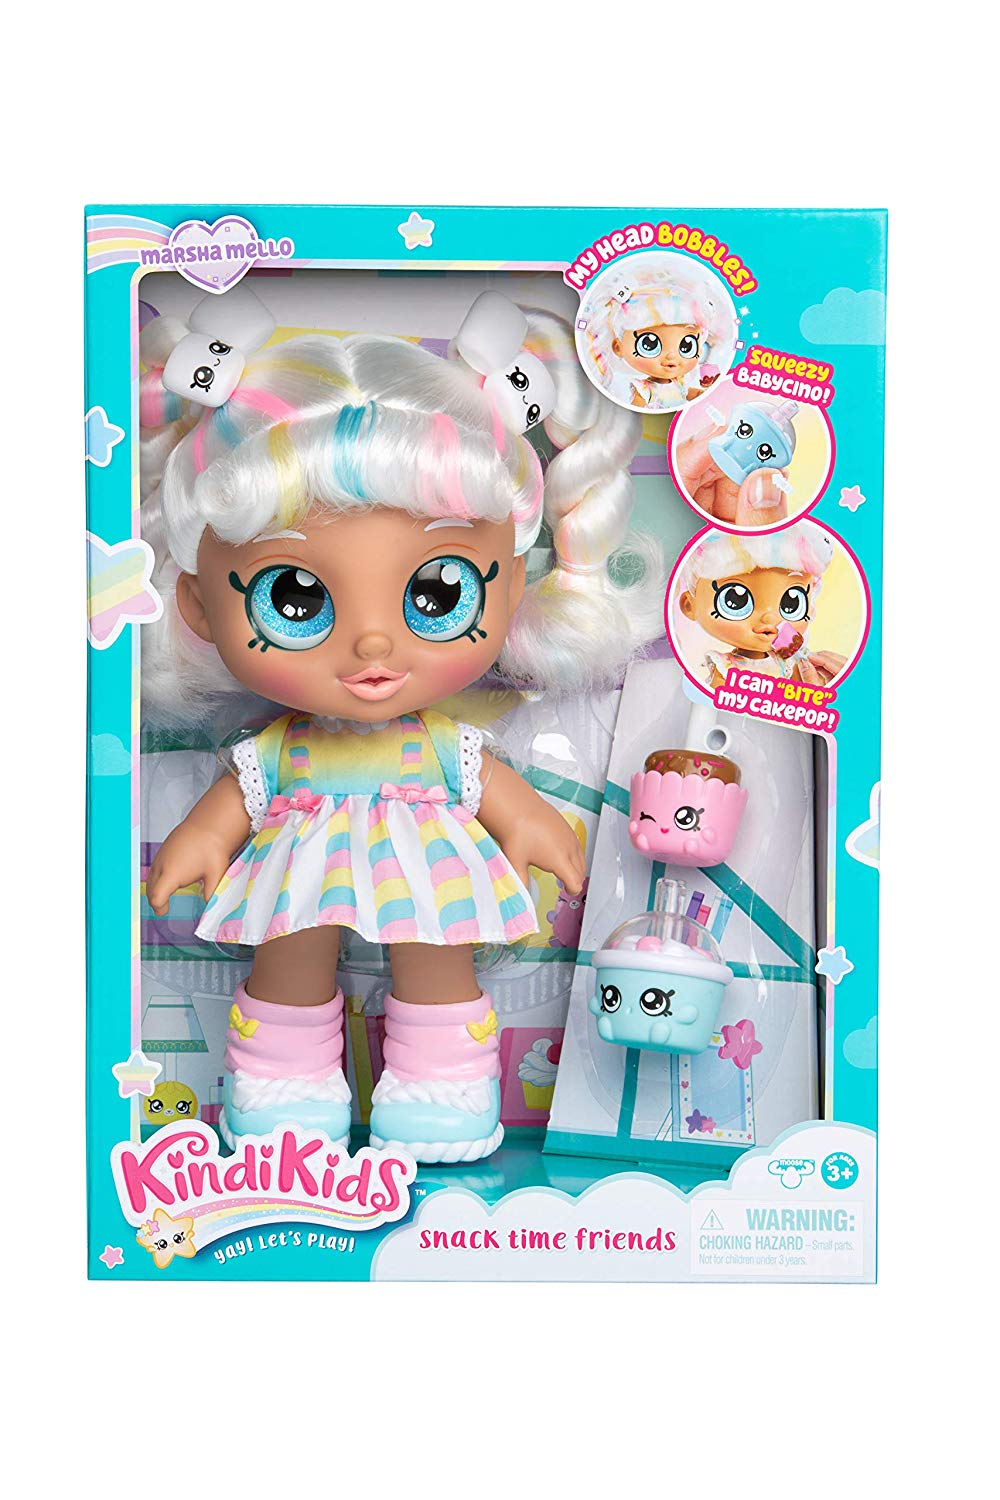 Kindi Kids Snack Time Friends Toddler Marsha Mello Doll